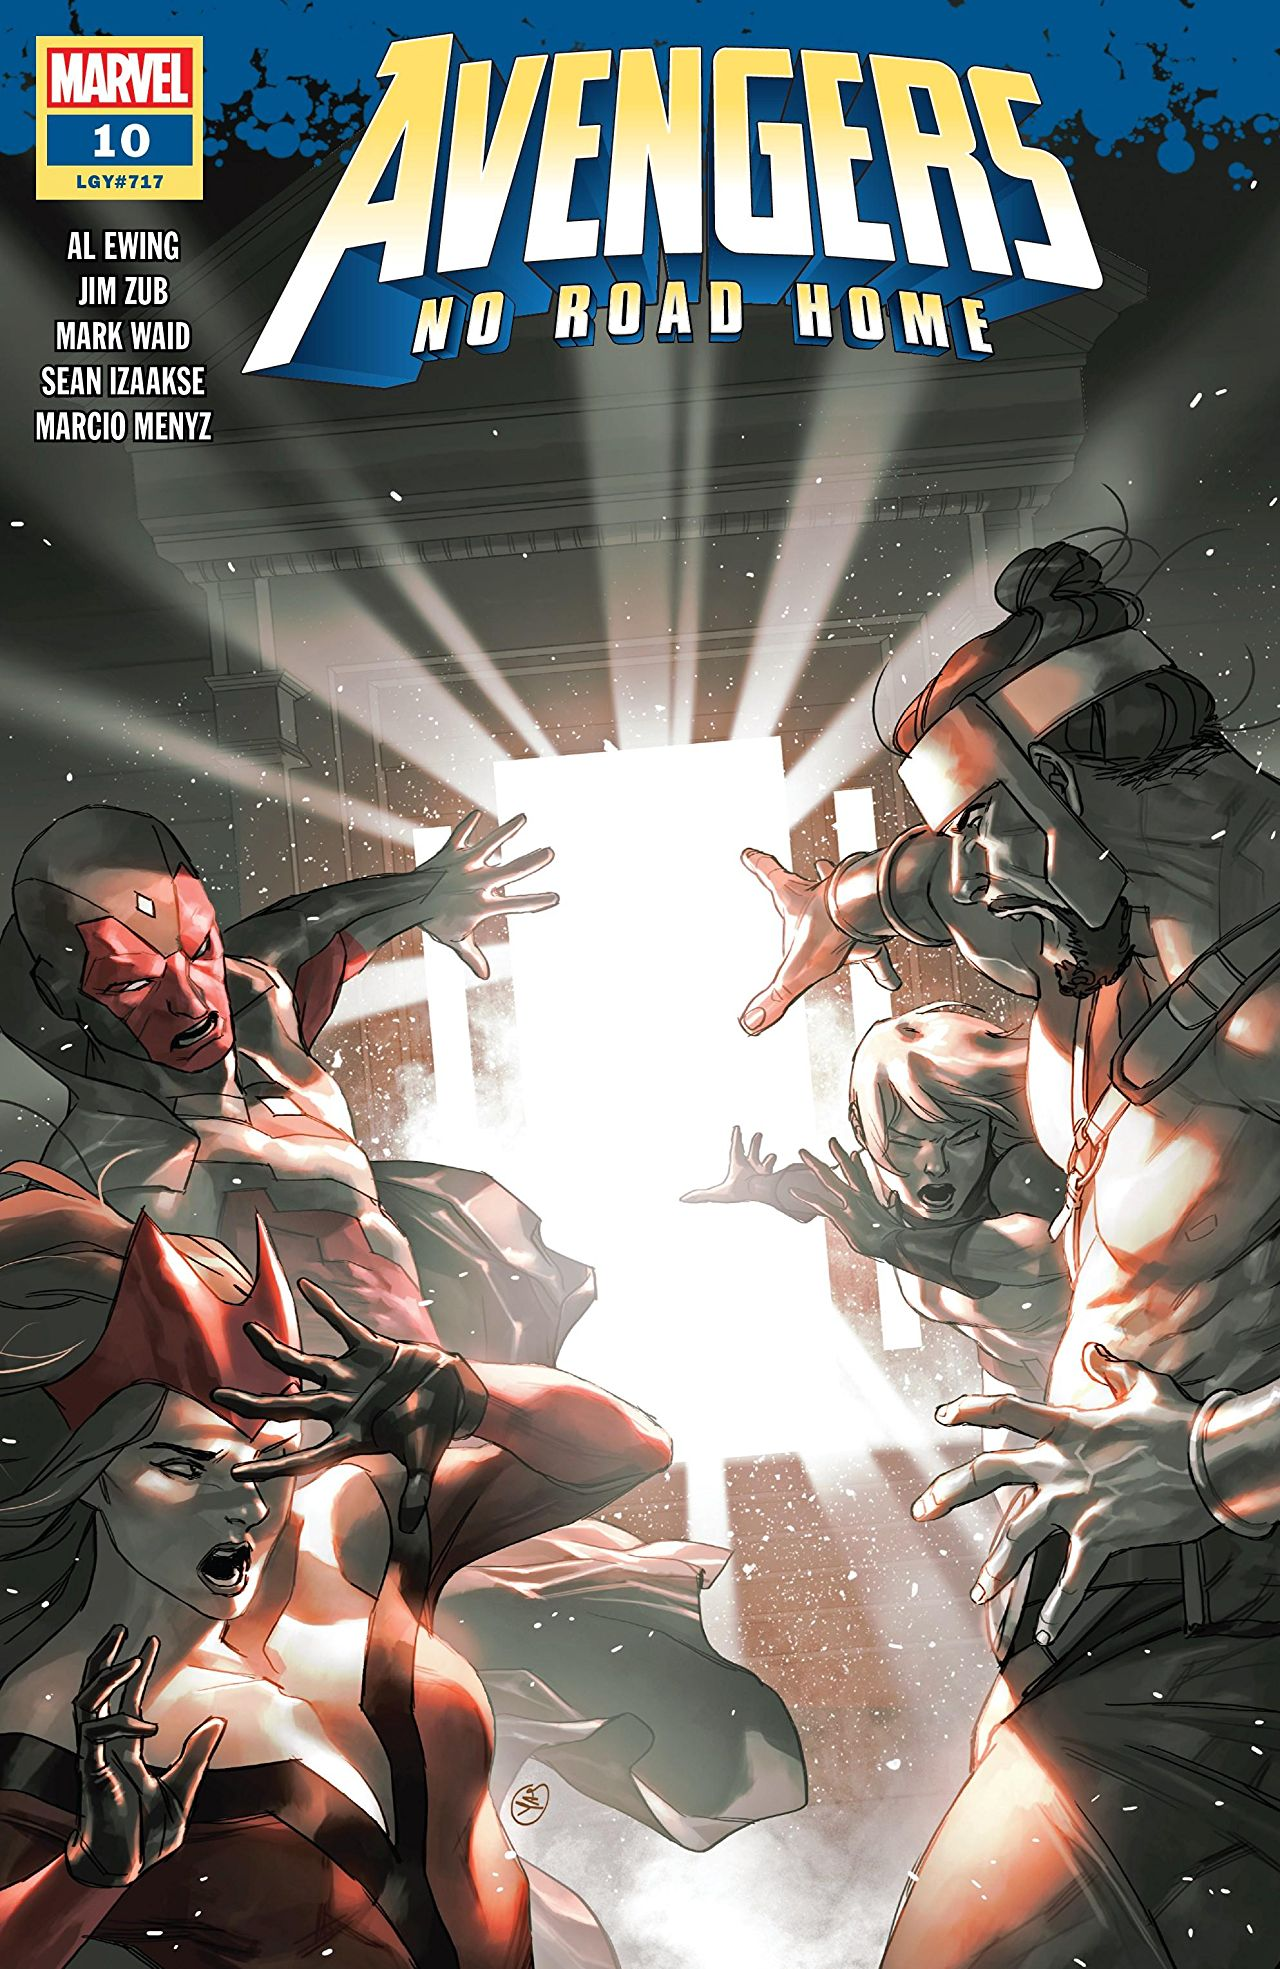 Marvel Preview: Avengers: No Road Home #10